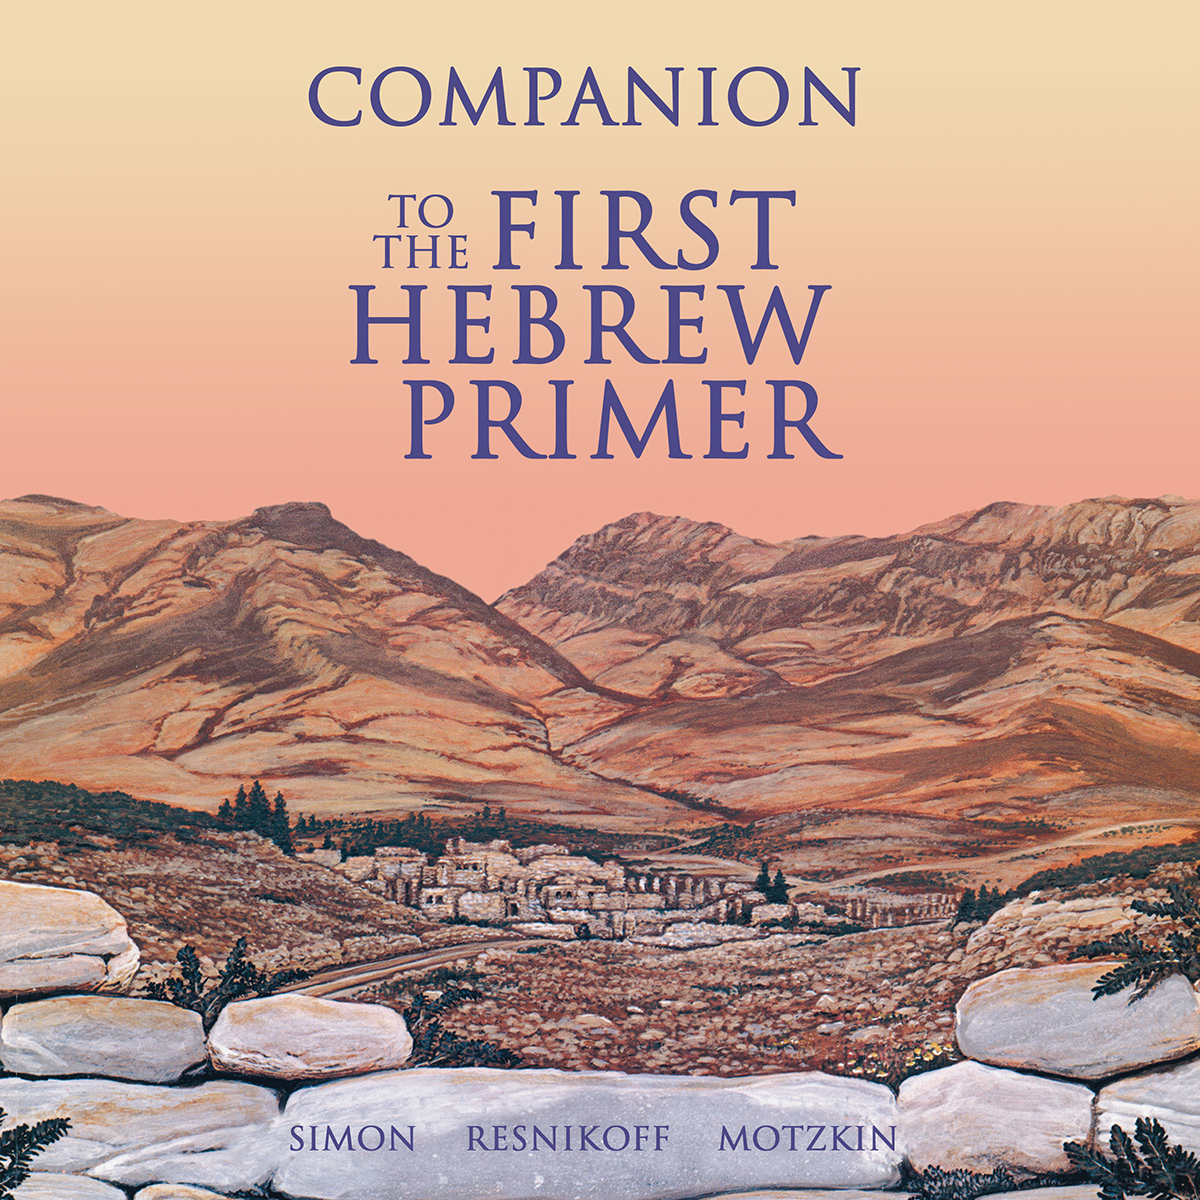 Companion to the The First Hebrew Primer (Audio Download)